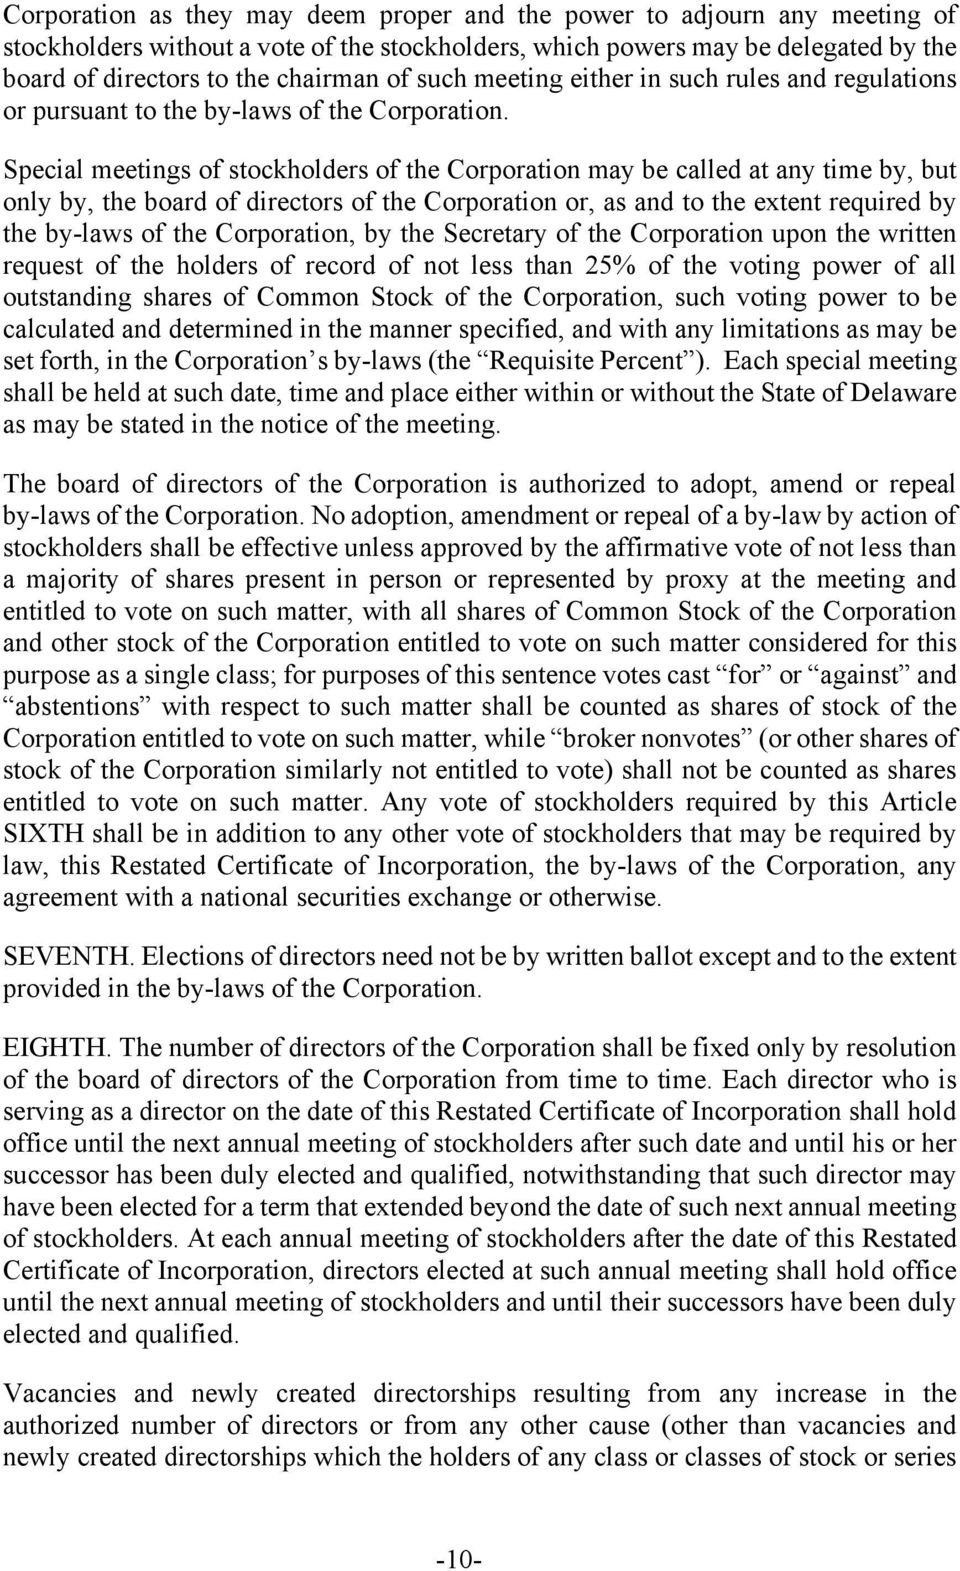 Special meetings of stockholders of the Corporation may be called at any time by, but only by, the board of directors of the Corporation or, as and to the extent required by the by-laws of the